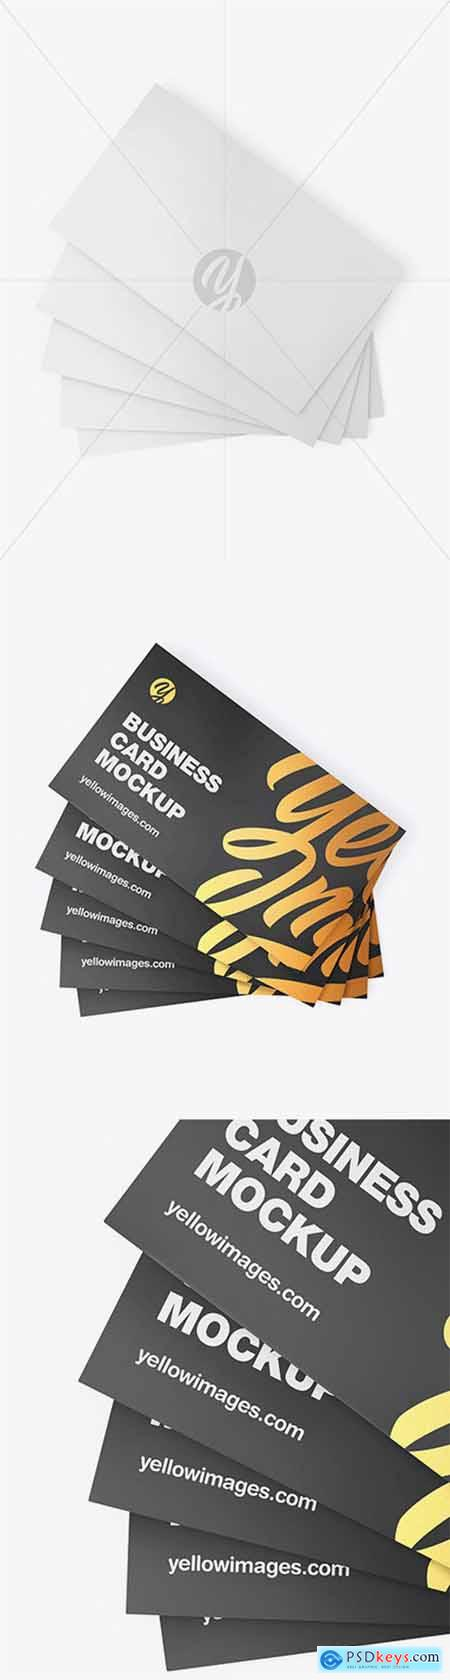 Business Cards Mockup 55237